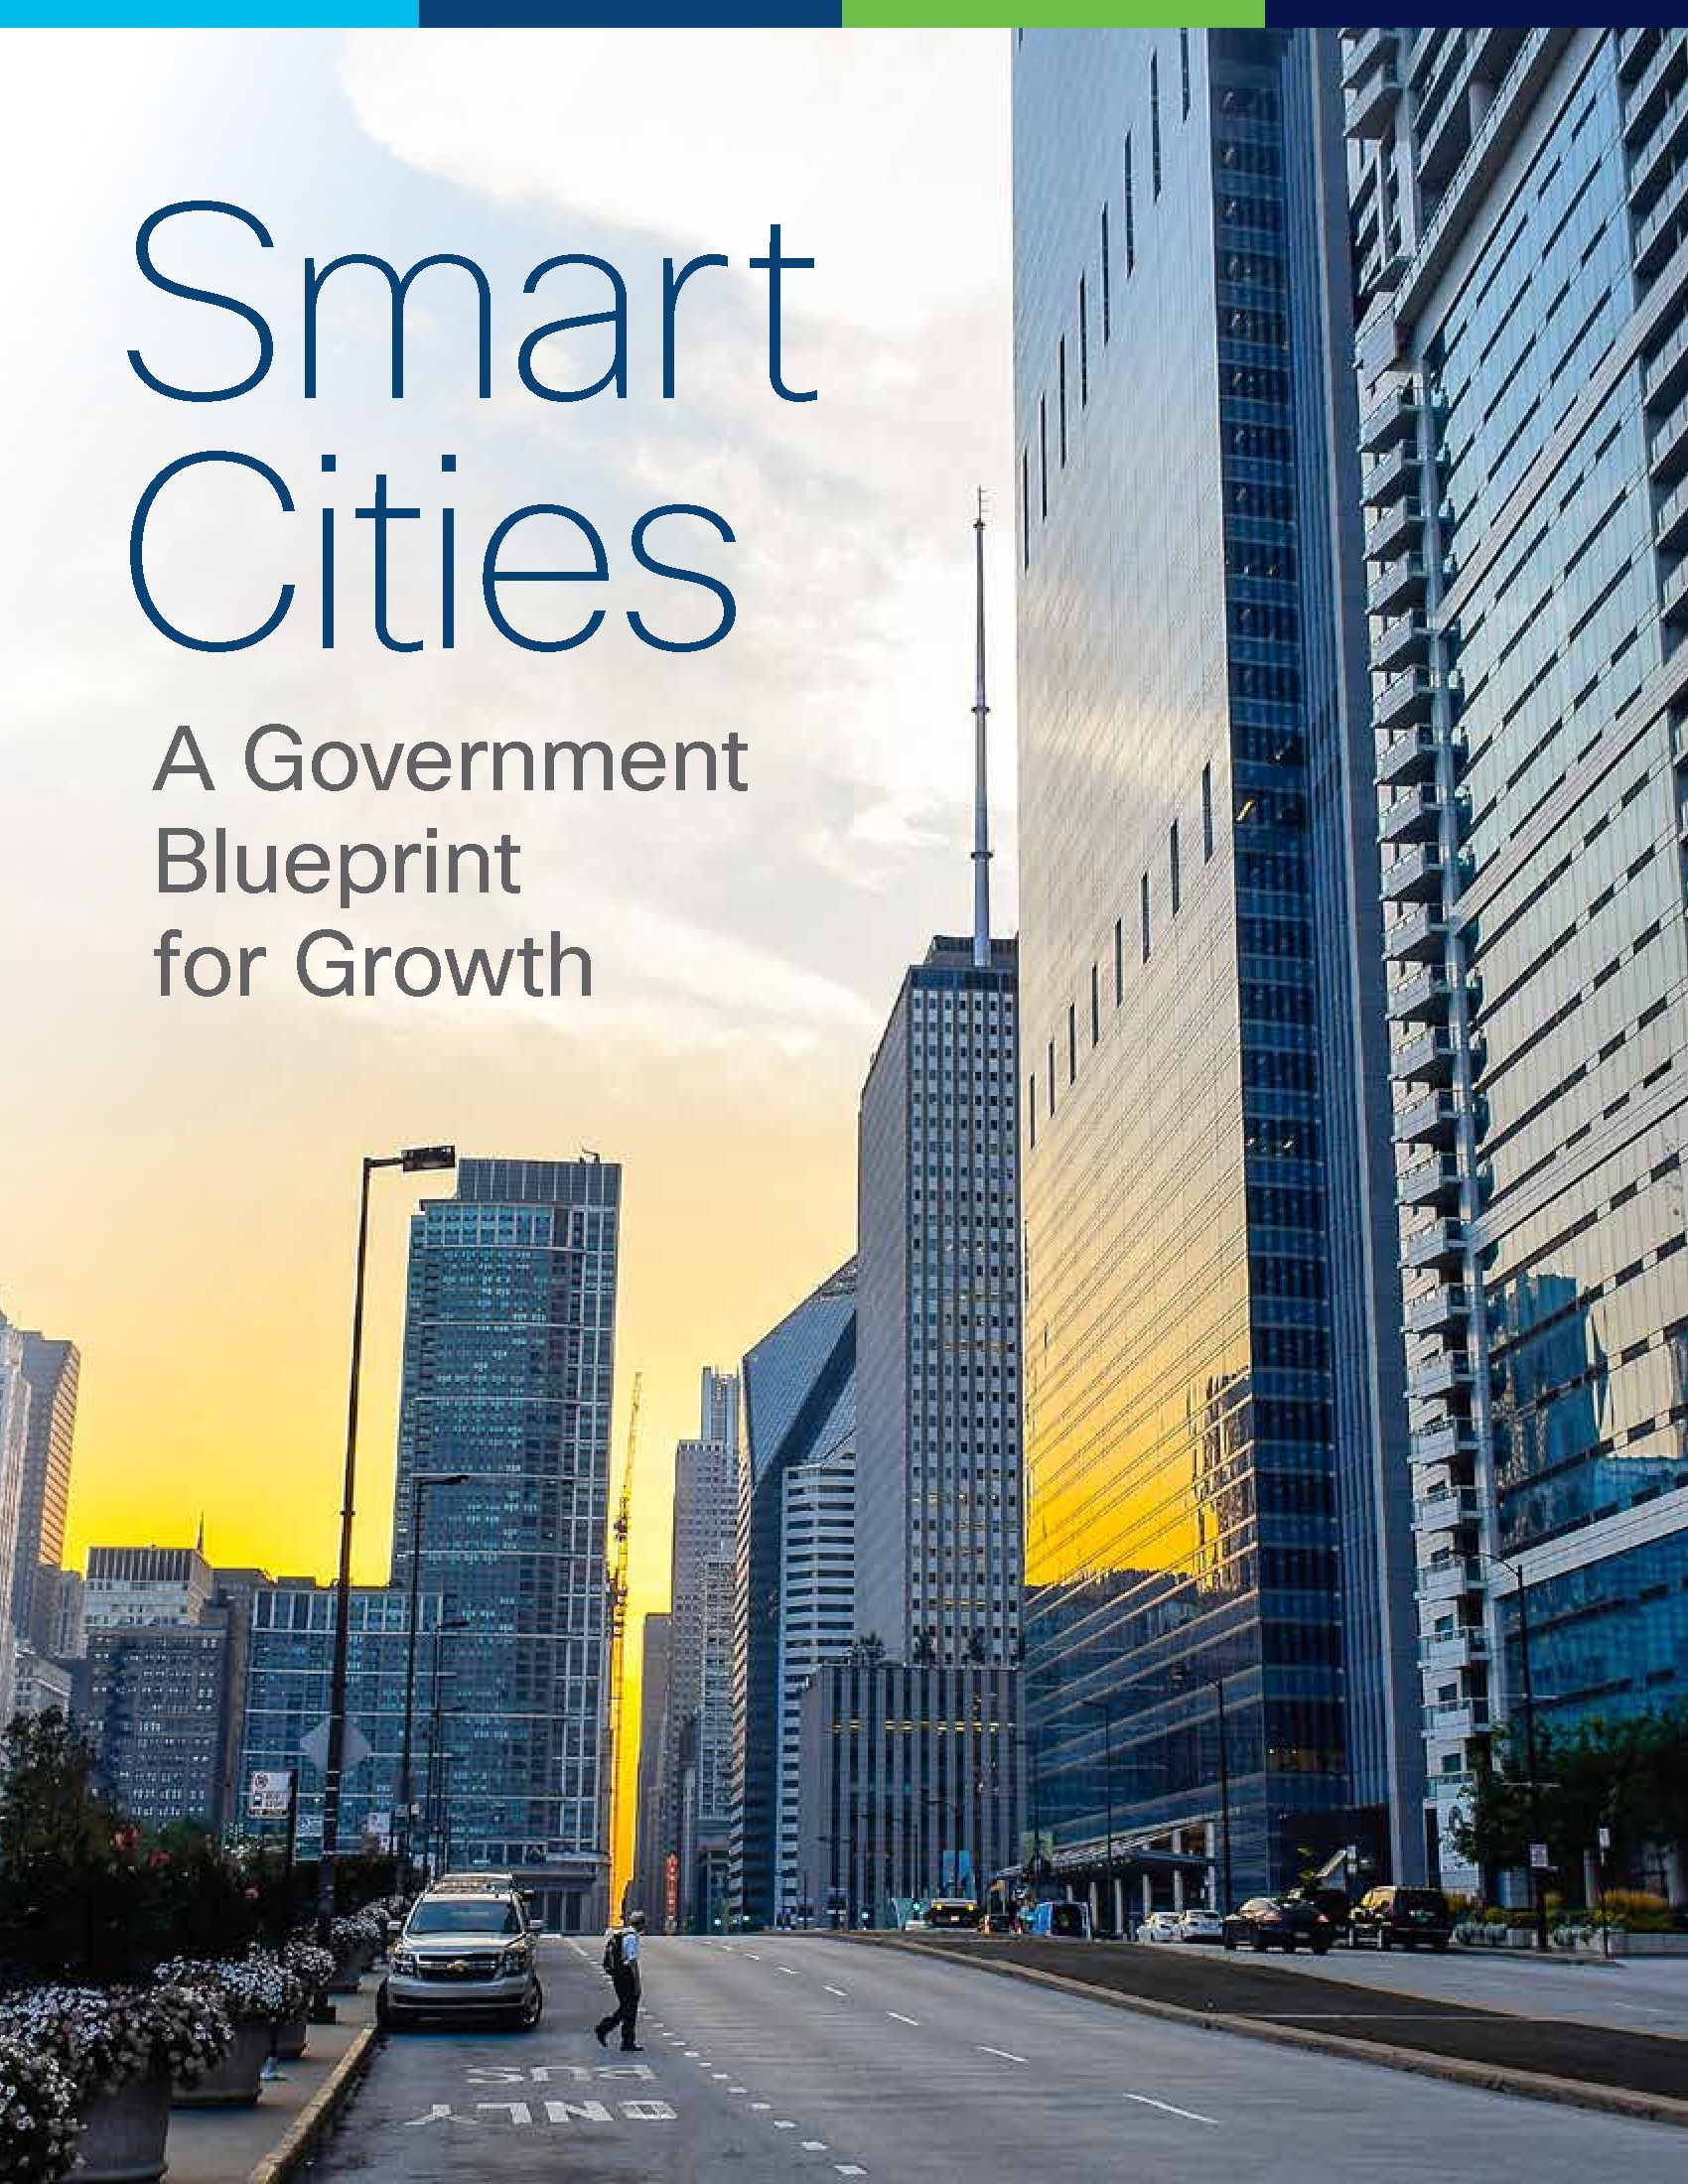 GT - Cisco - White Paper - Smart Cities: A Government Blueprint for Growth